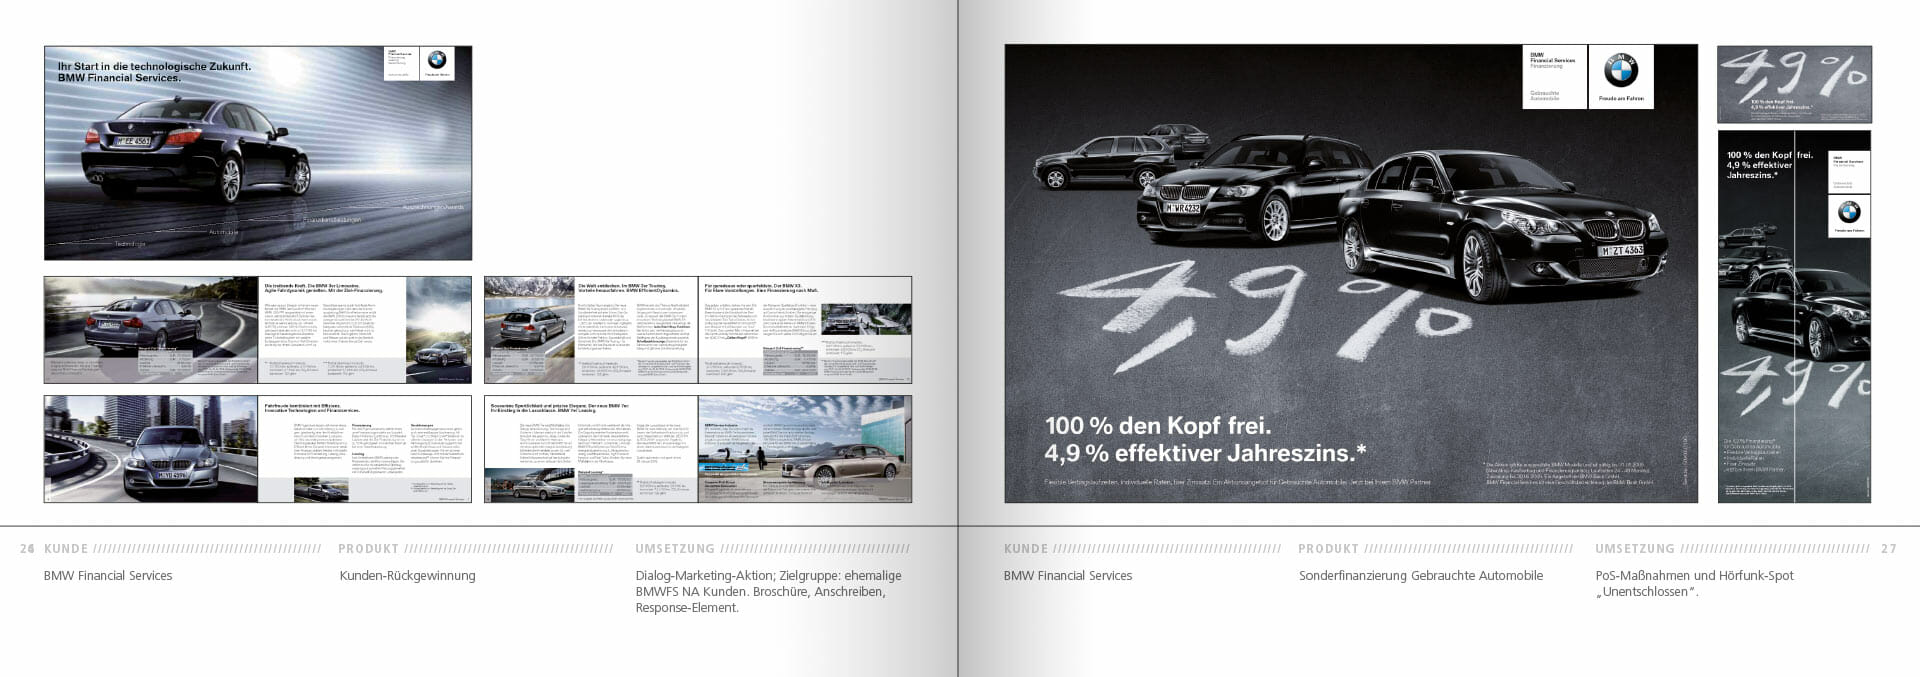 BMW Group Works 2001-2009 Booklet 26-27